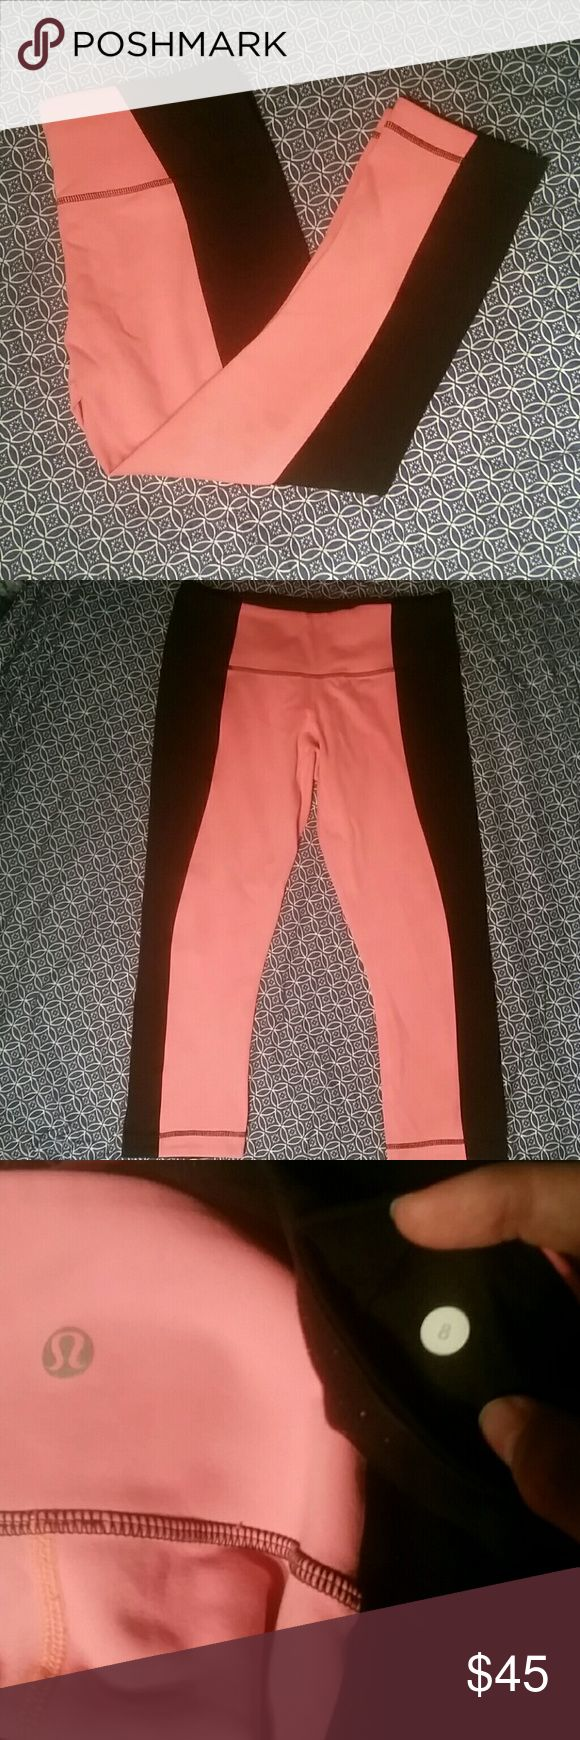 Lululemon Wunder Under Crop Bonded WU crop from Lululemon. Very good used condition. Some piling in the crotch; the rest of the pant is in great condition. Coral color, orange ish pink. Size 8, but imo, the Bonded technology makes this feel more like a 6. Make an offer! :) lululemon athletica Pants Leggings